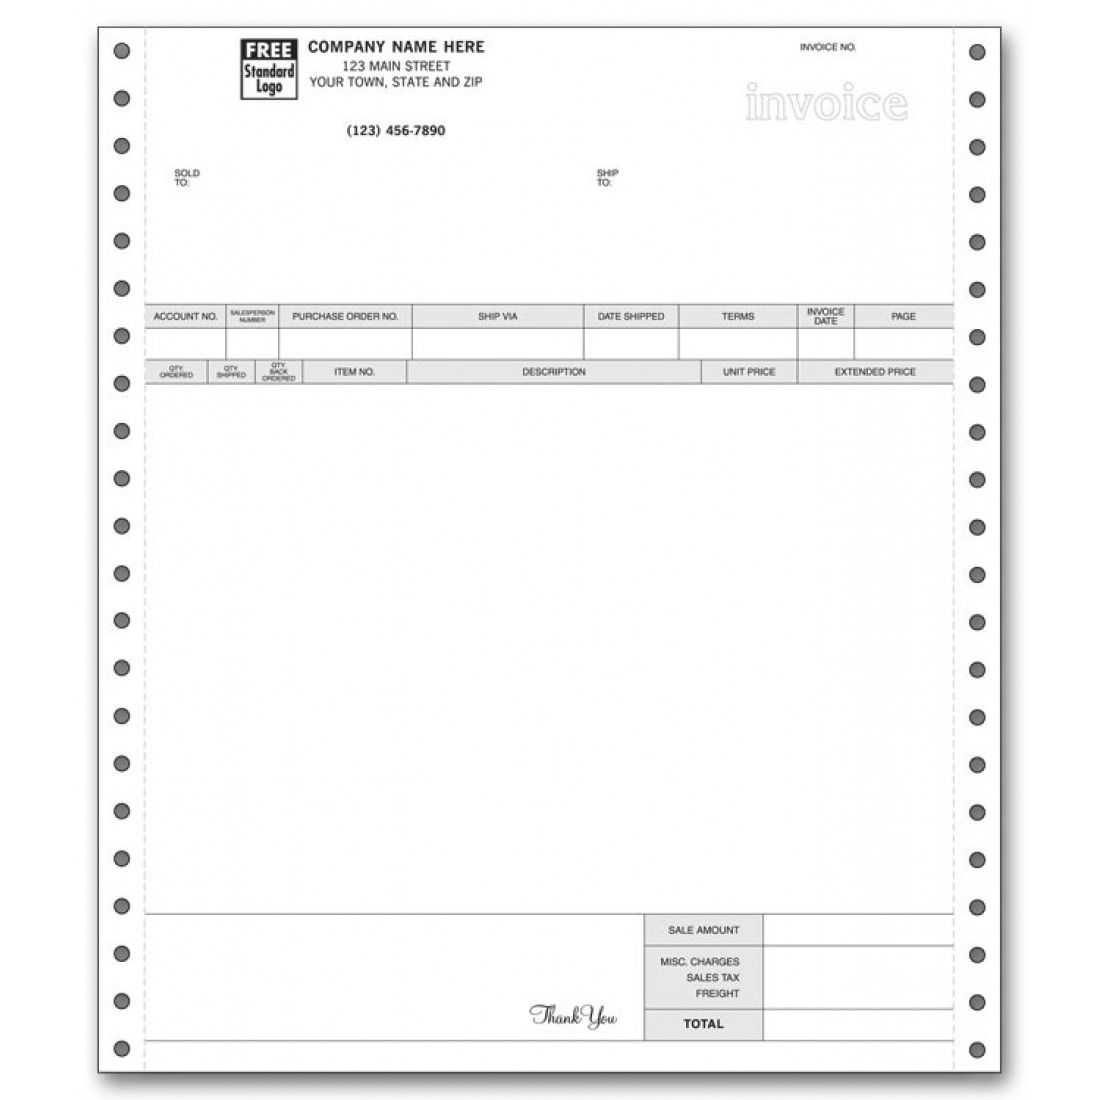 General Continuous Invoice for RealWorld & Great Plains